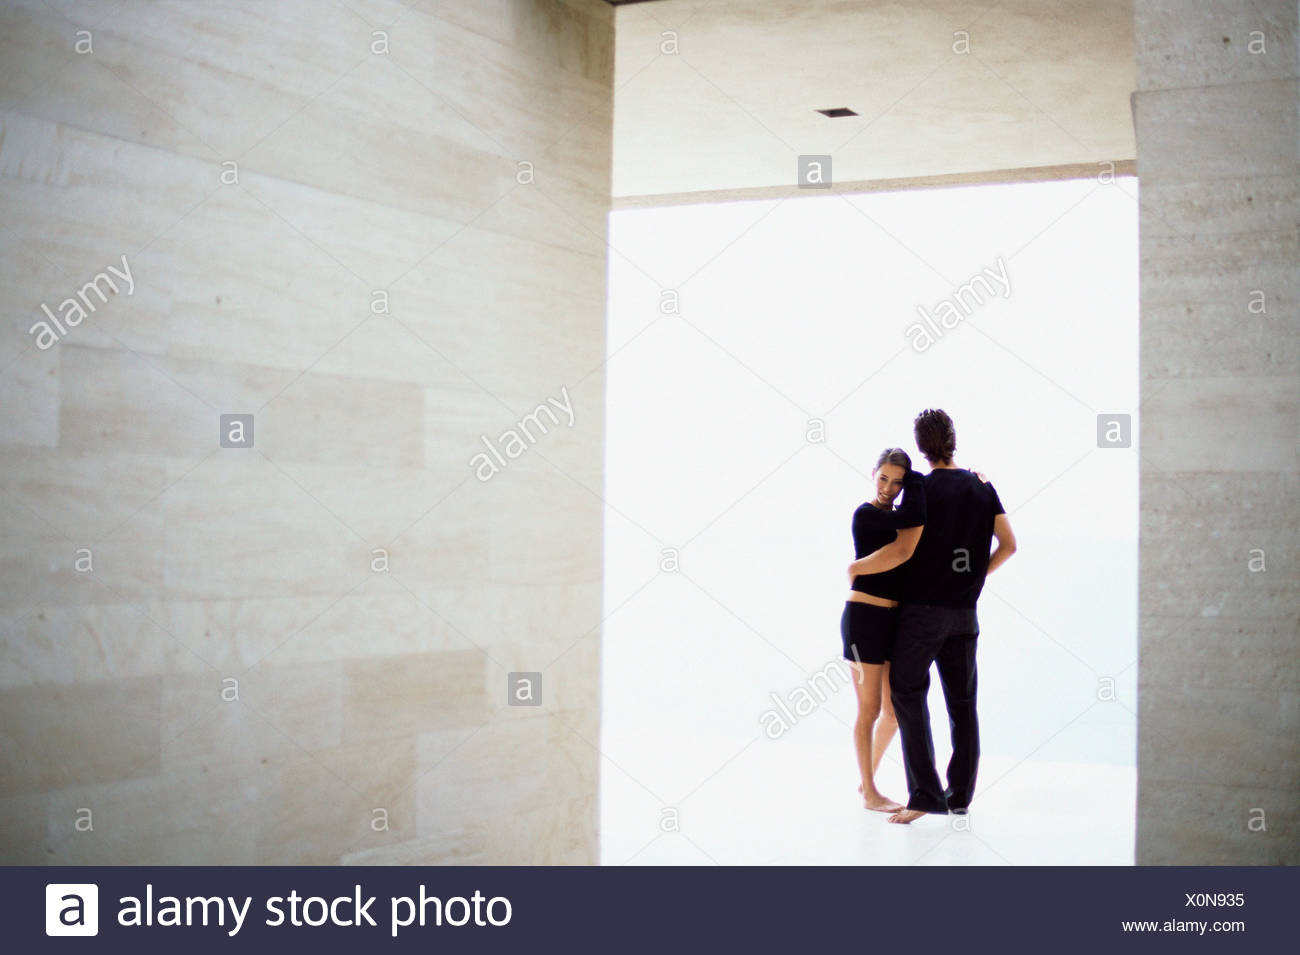 Couple in spacious room - Stock Image